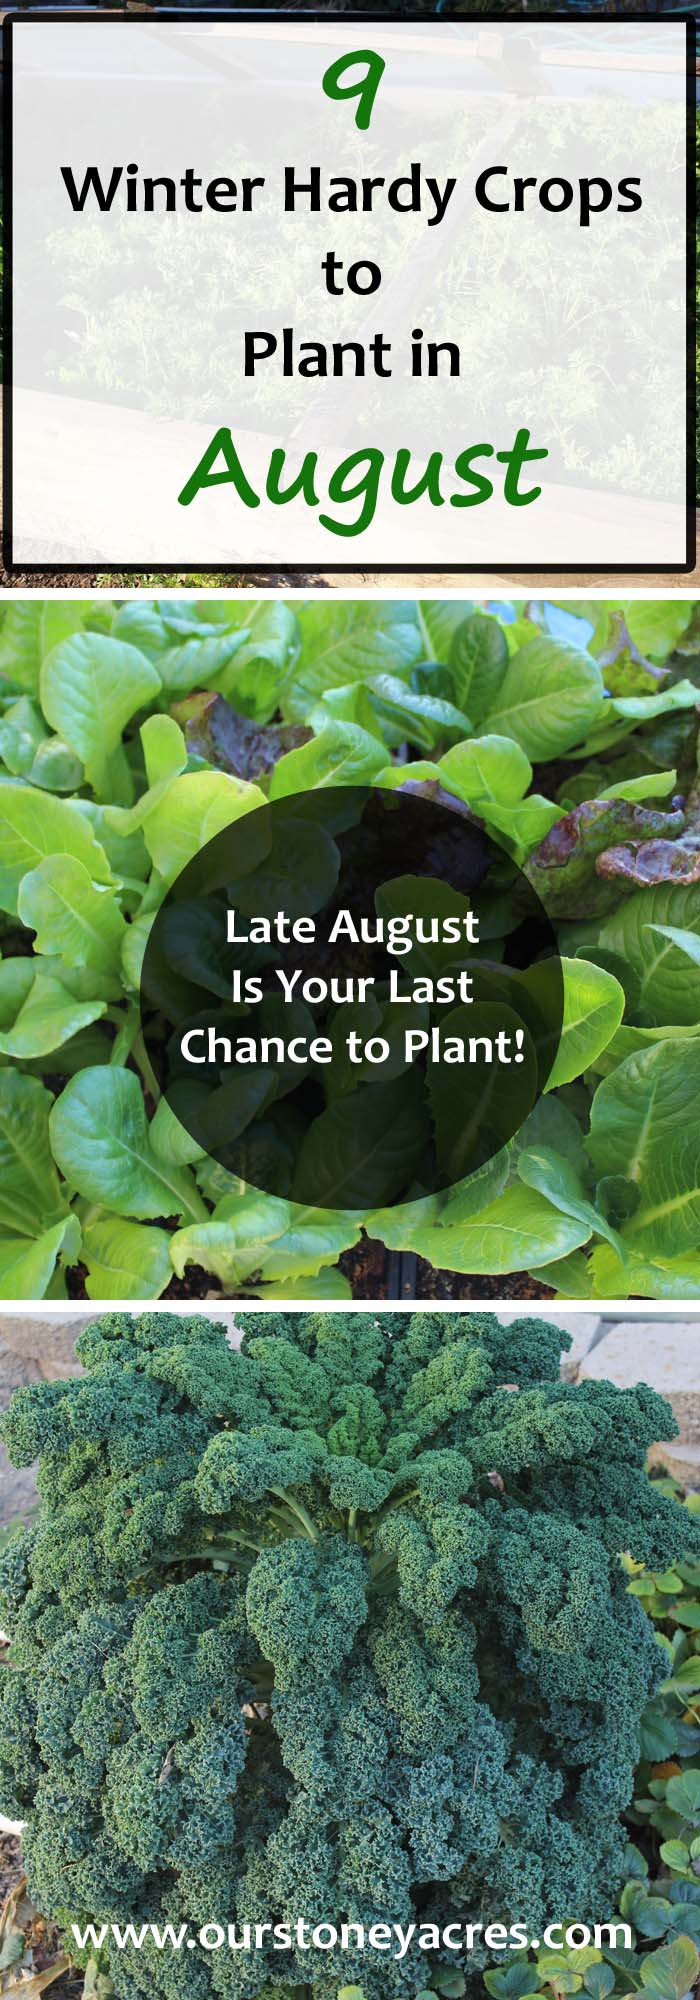 9 crops you can plant in august for fall and winter harvest